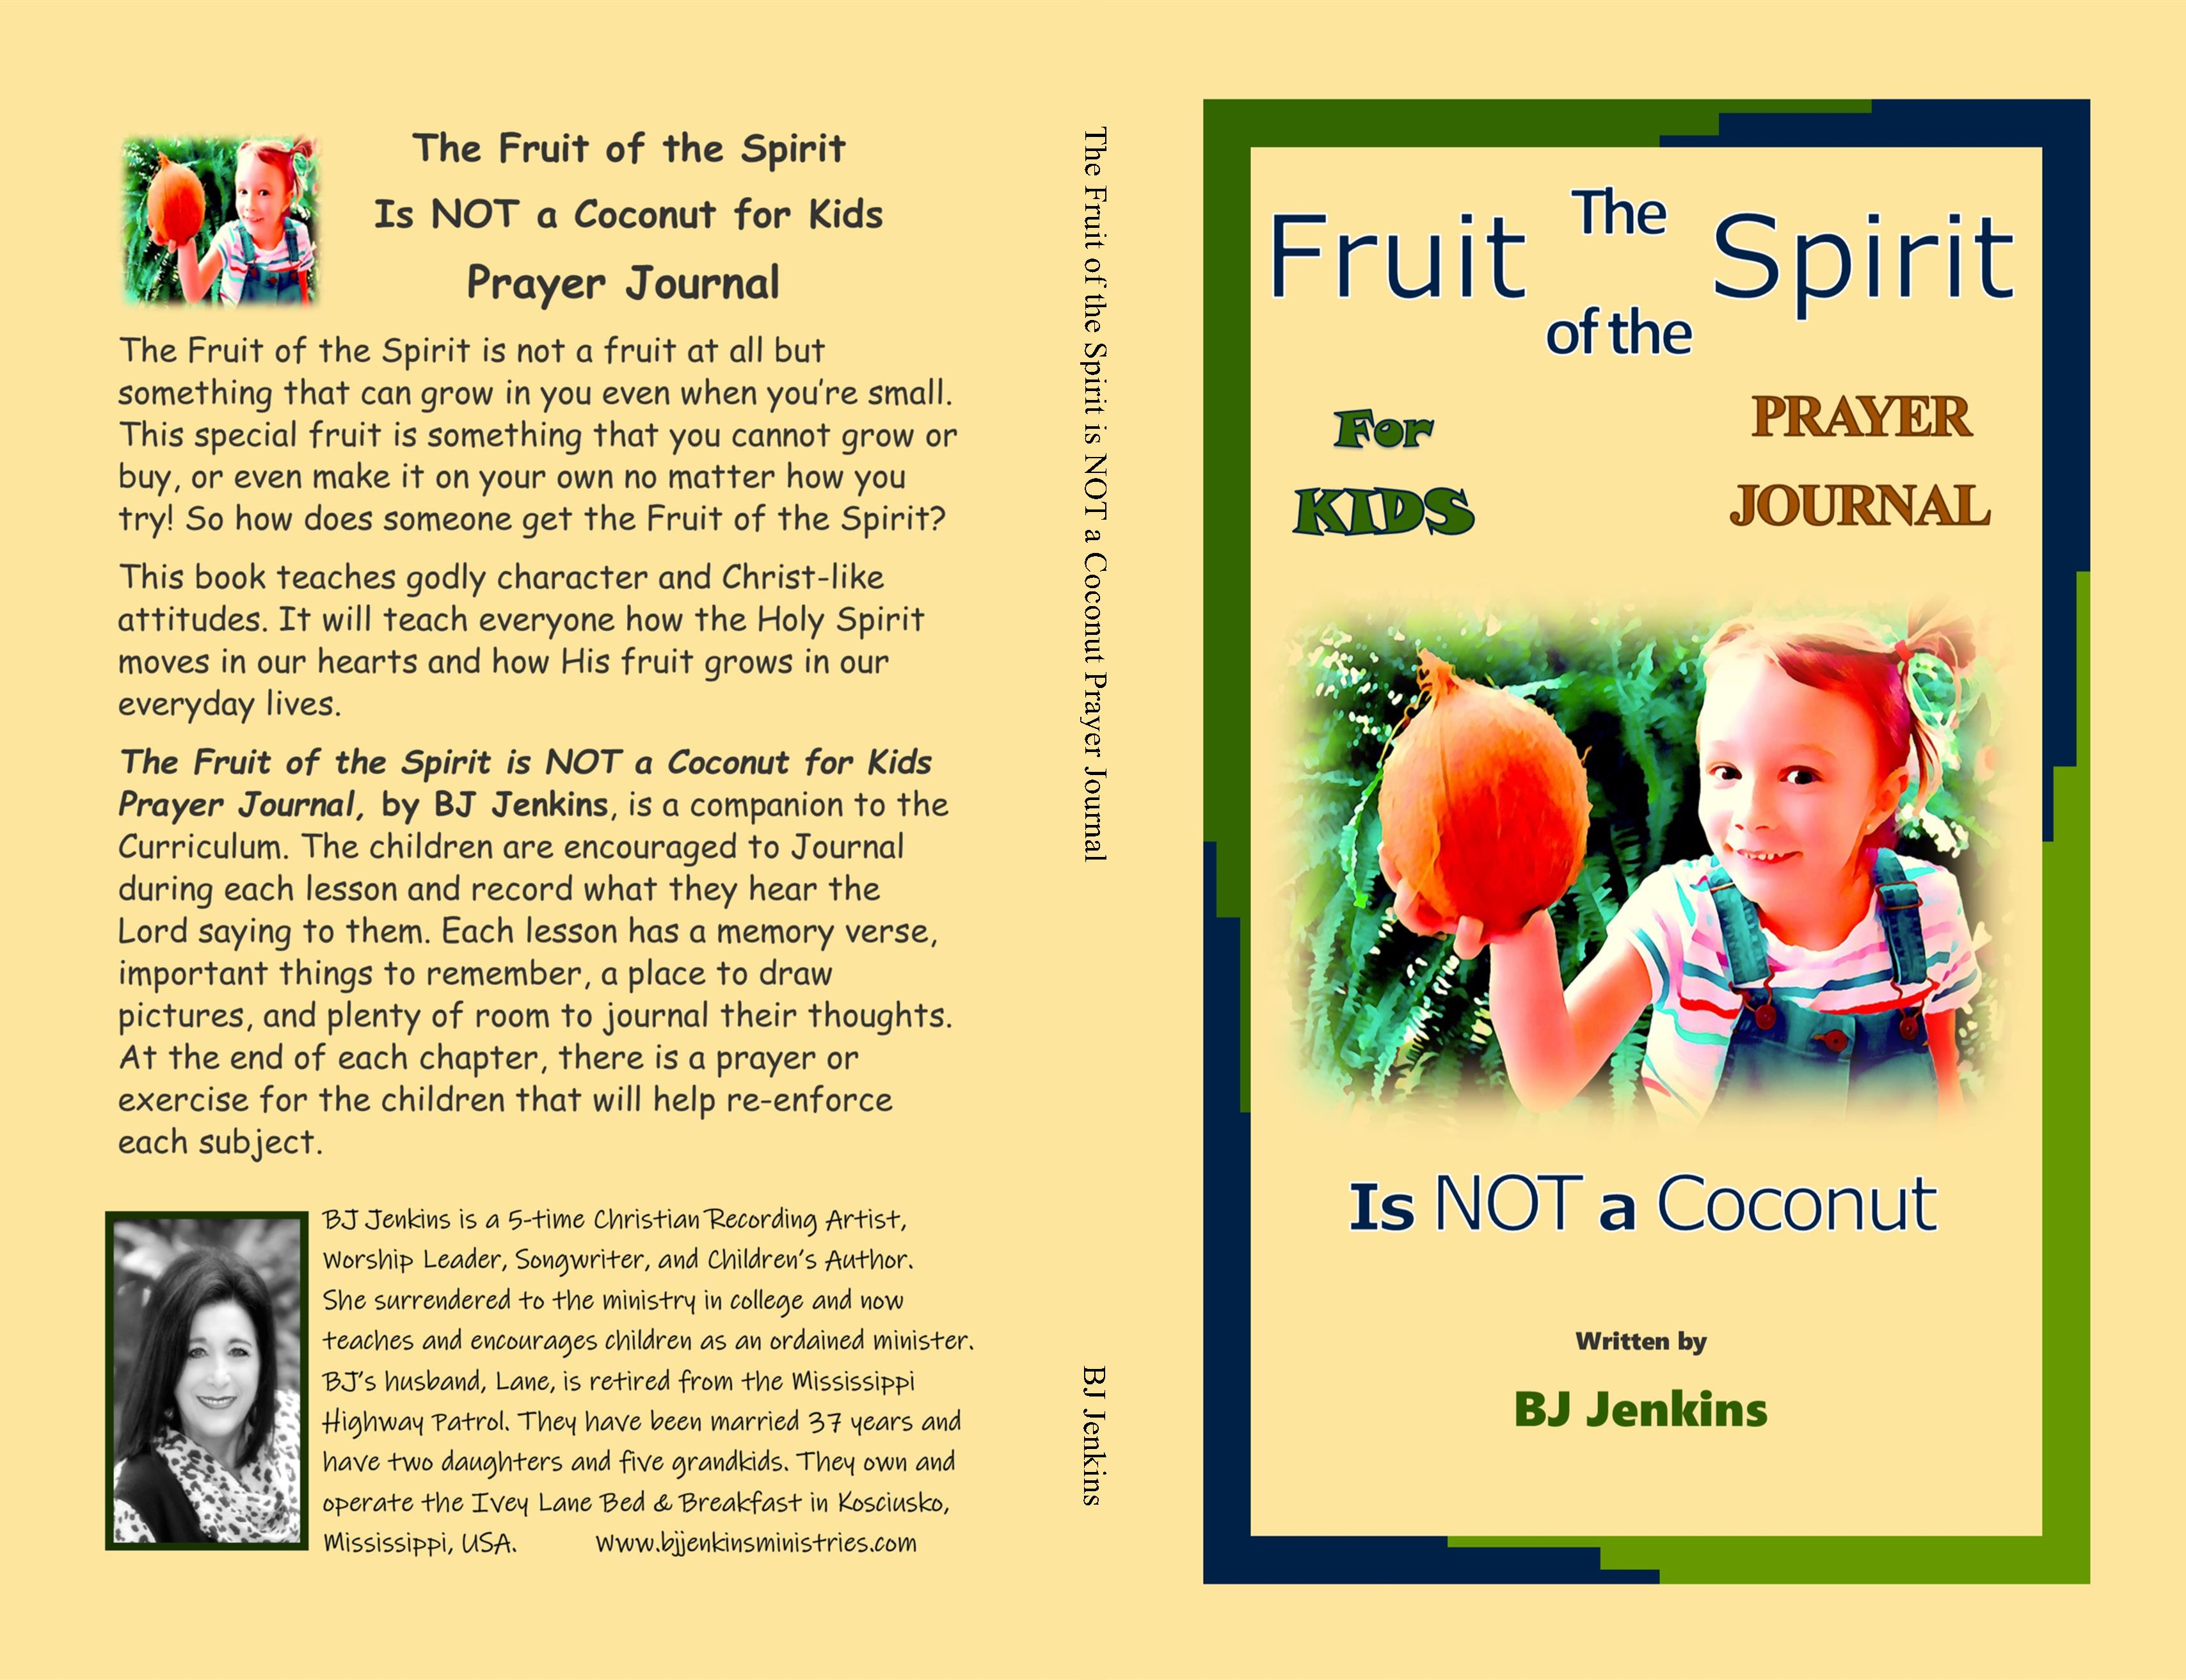 The Fruit of the Spirit is NOT a Coconut Prayer Journal cover image